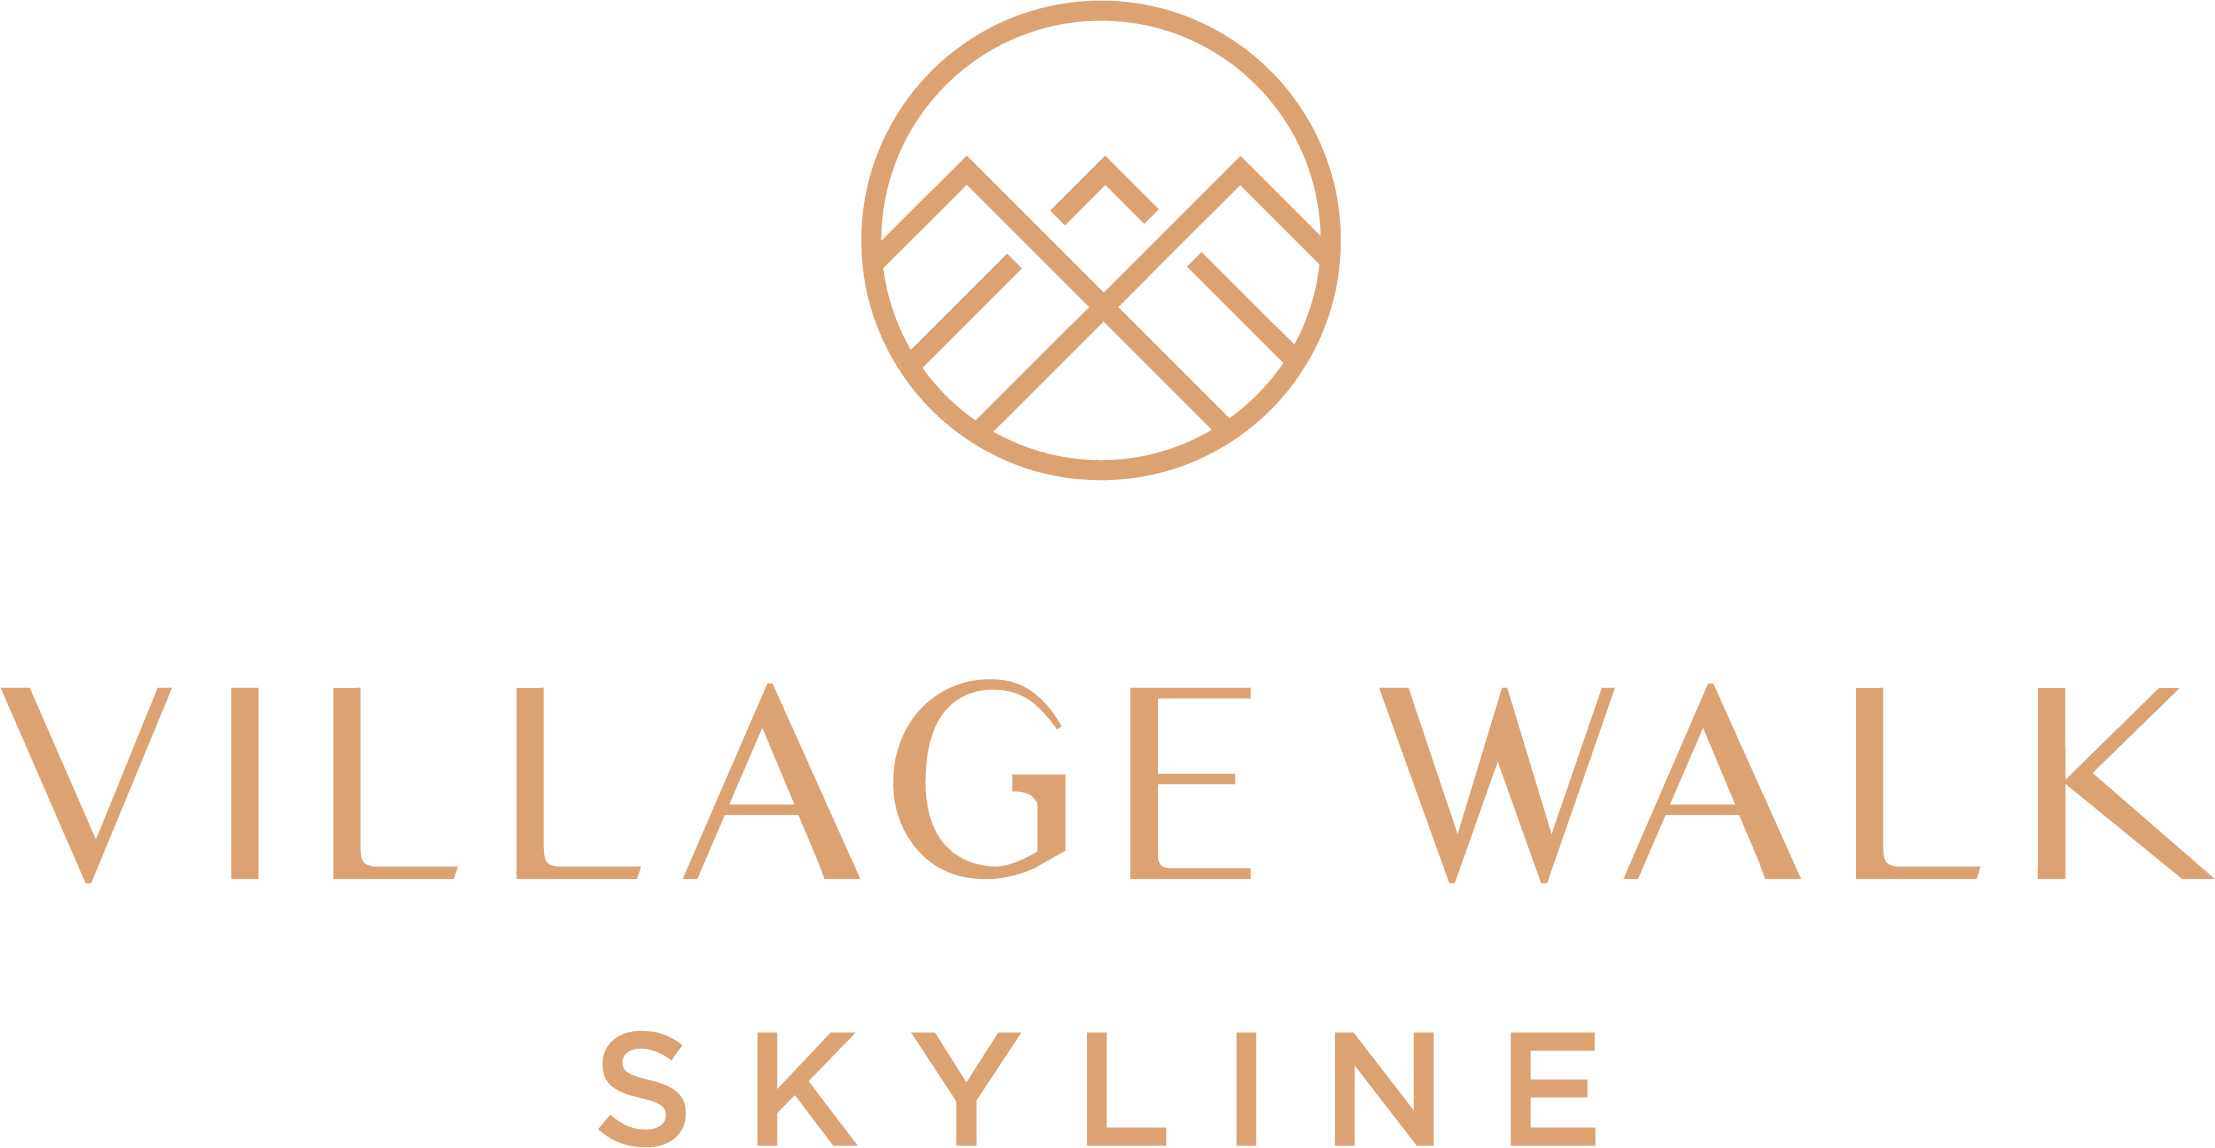 Mabble Media - Creative Agency | Village Walk Skyline Logo | Brand Guide | Video